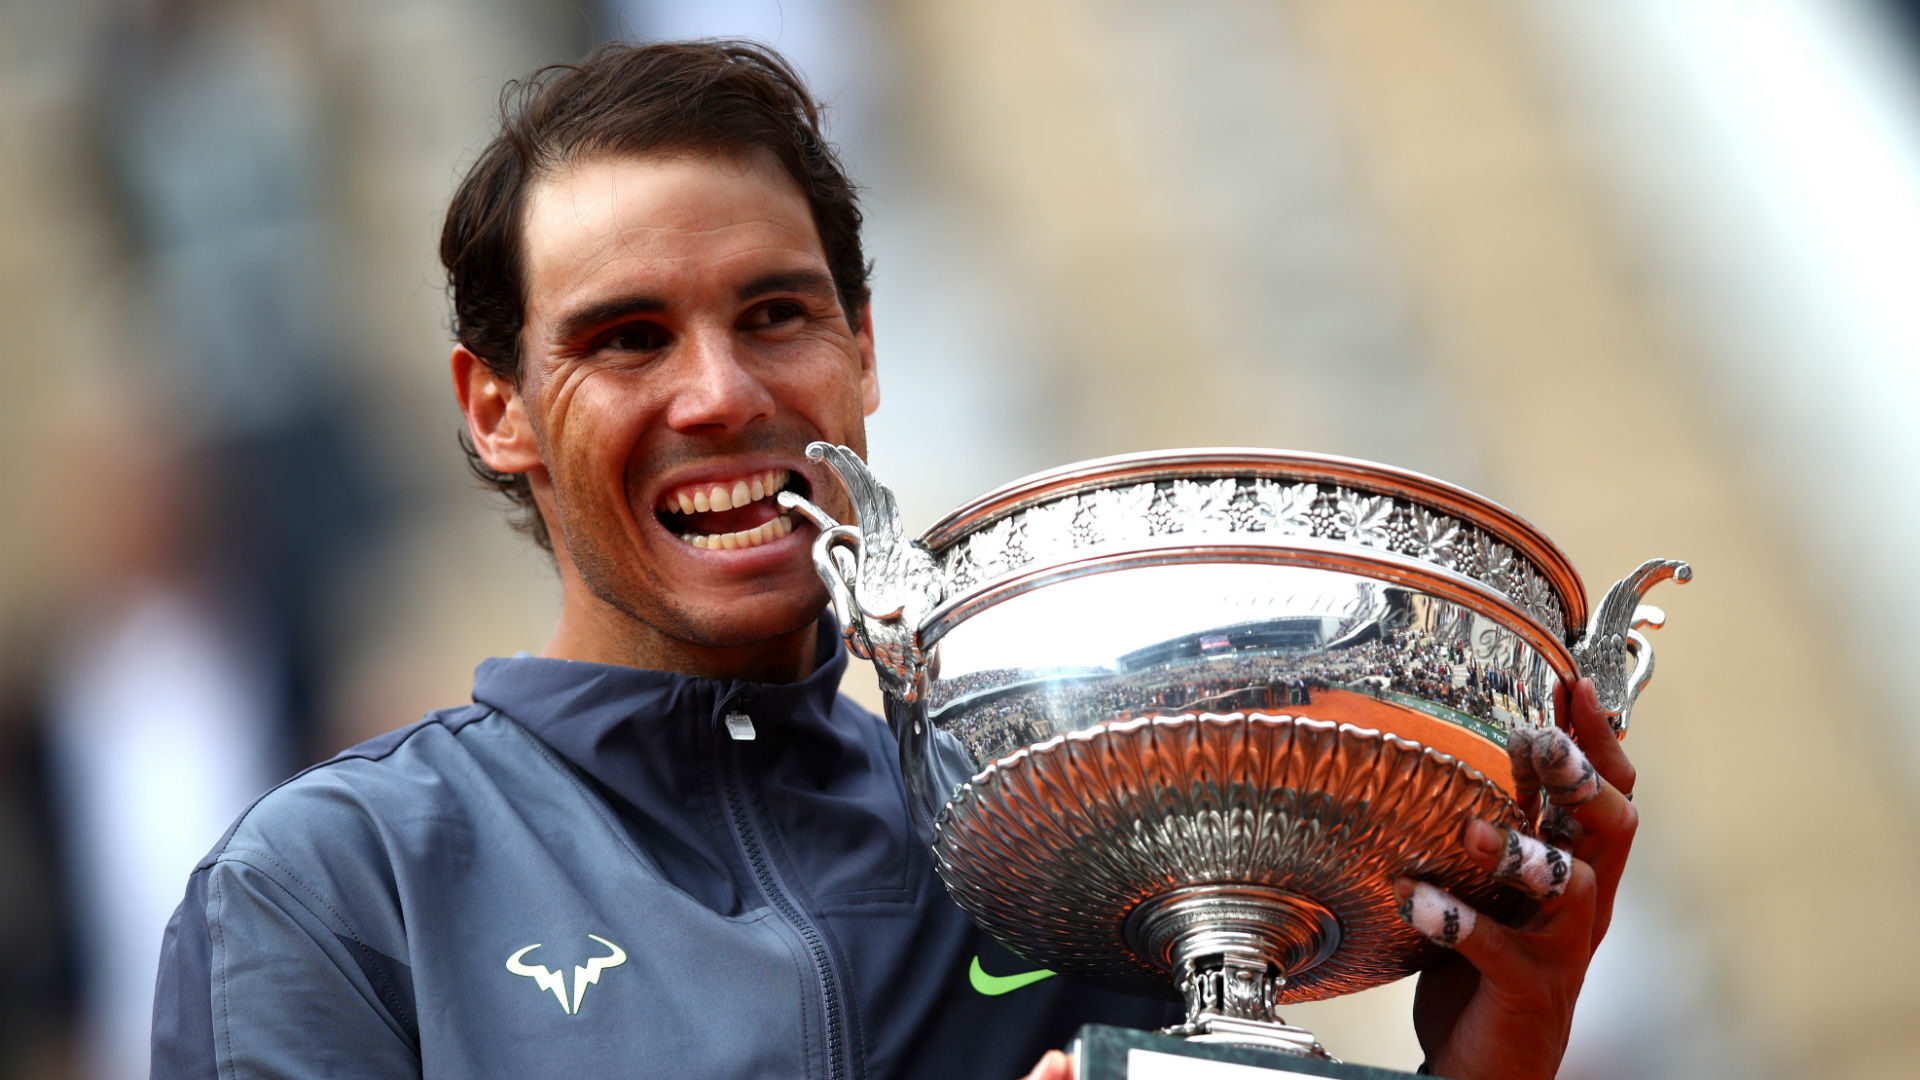 French Open 2019: Rafael Nadal continues Roland Garros reign